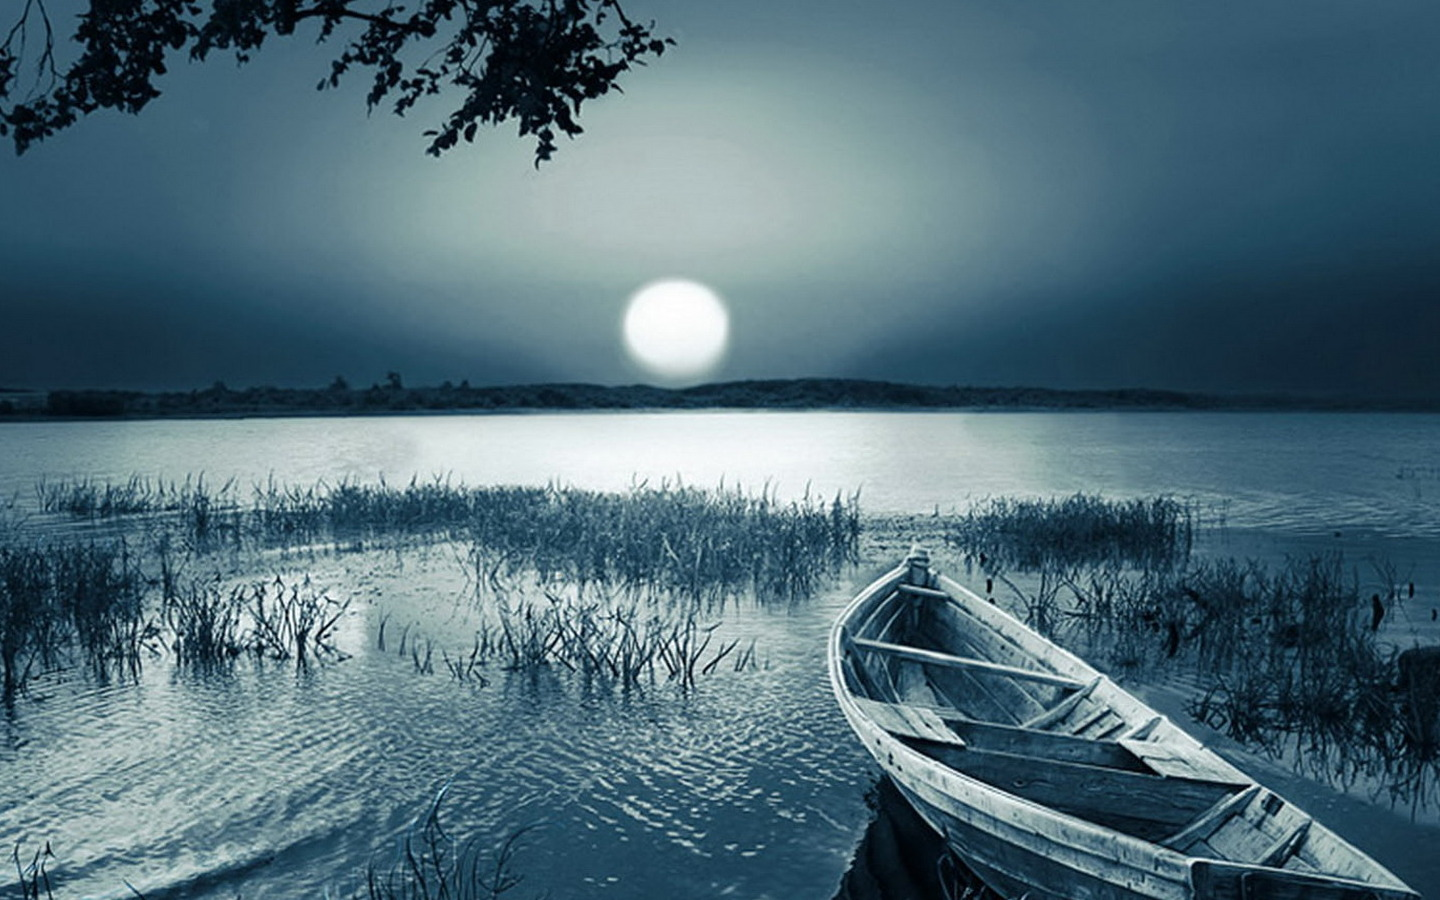 Free HQ Boat Lake WallpaperFree HQ Wallpapers 1228